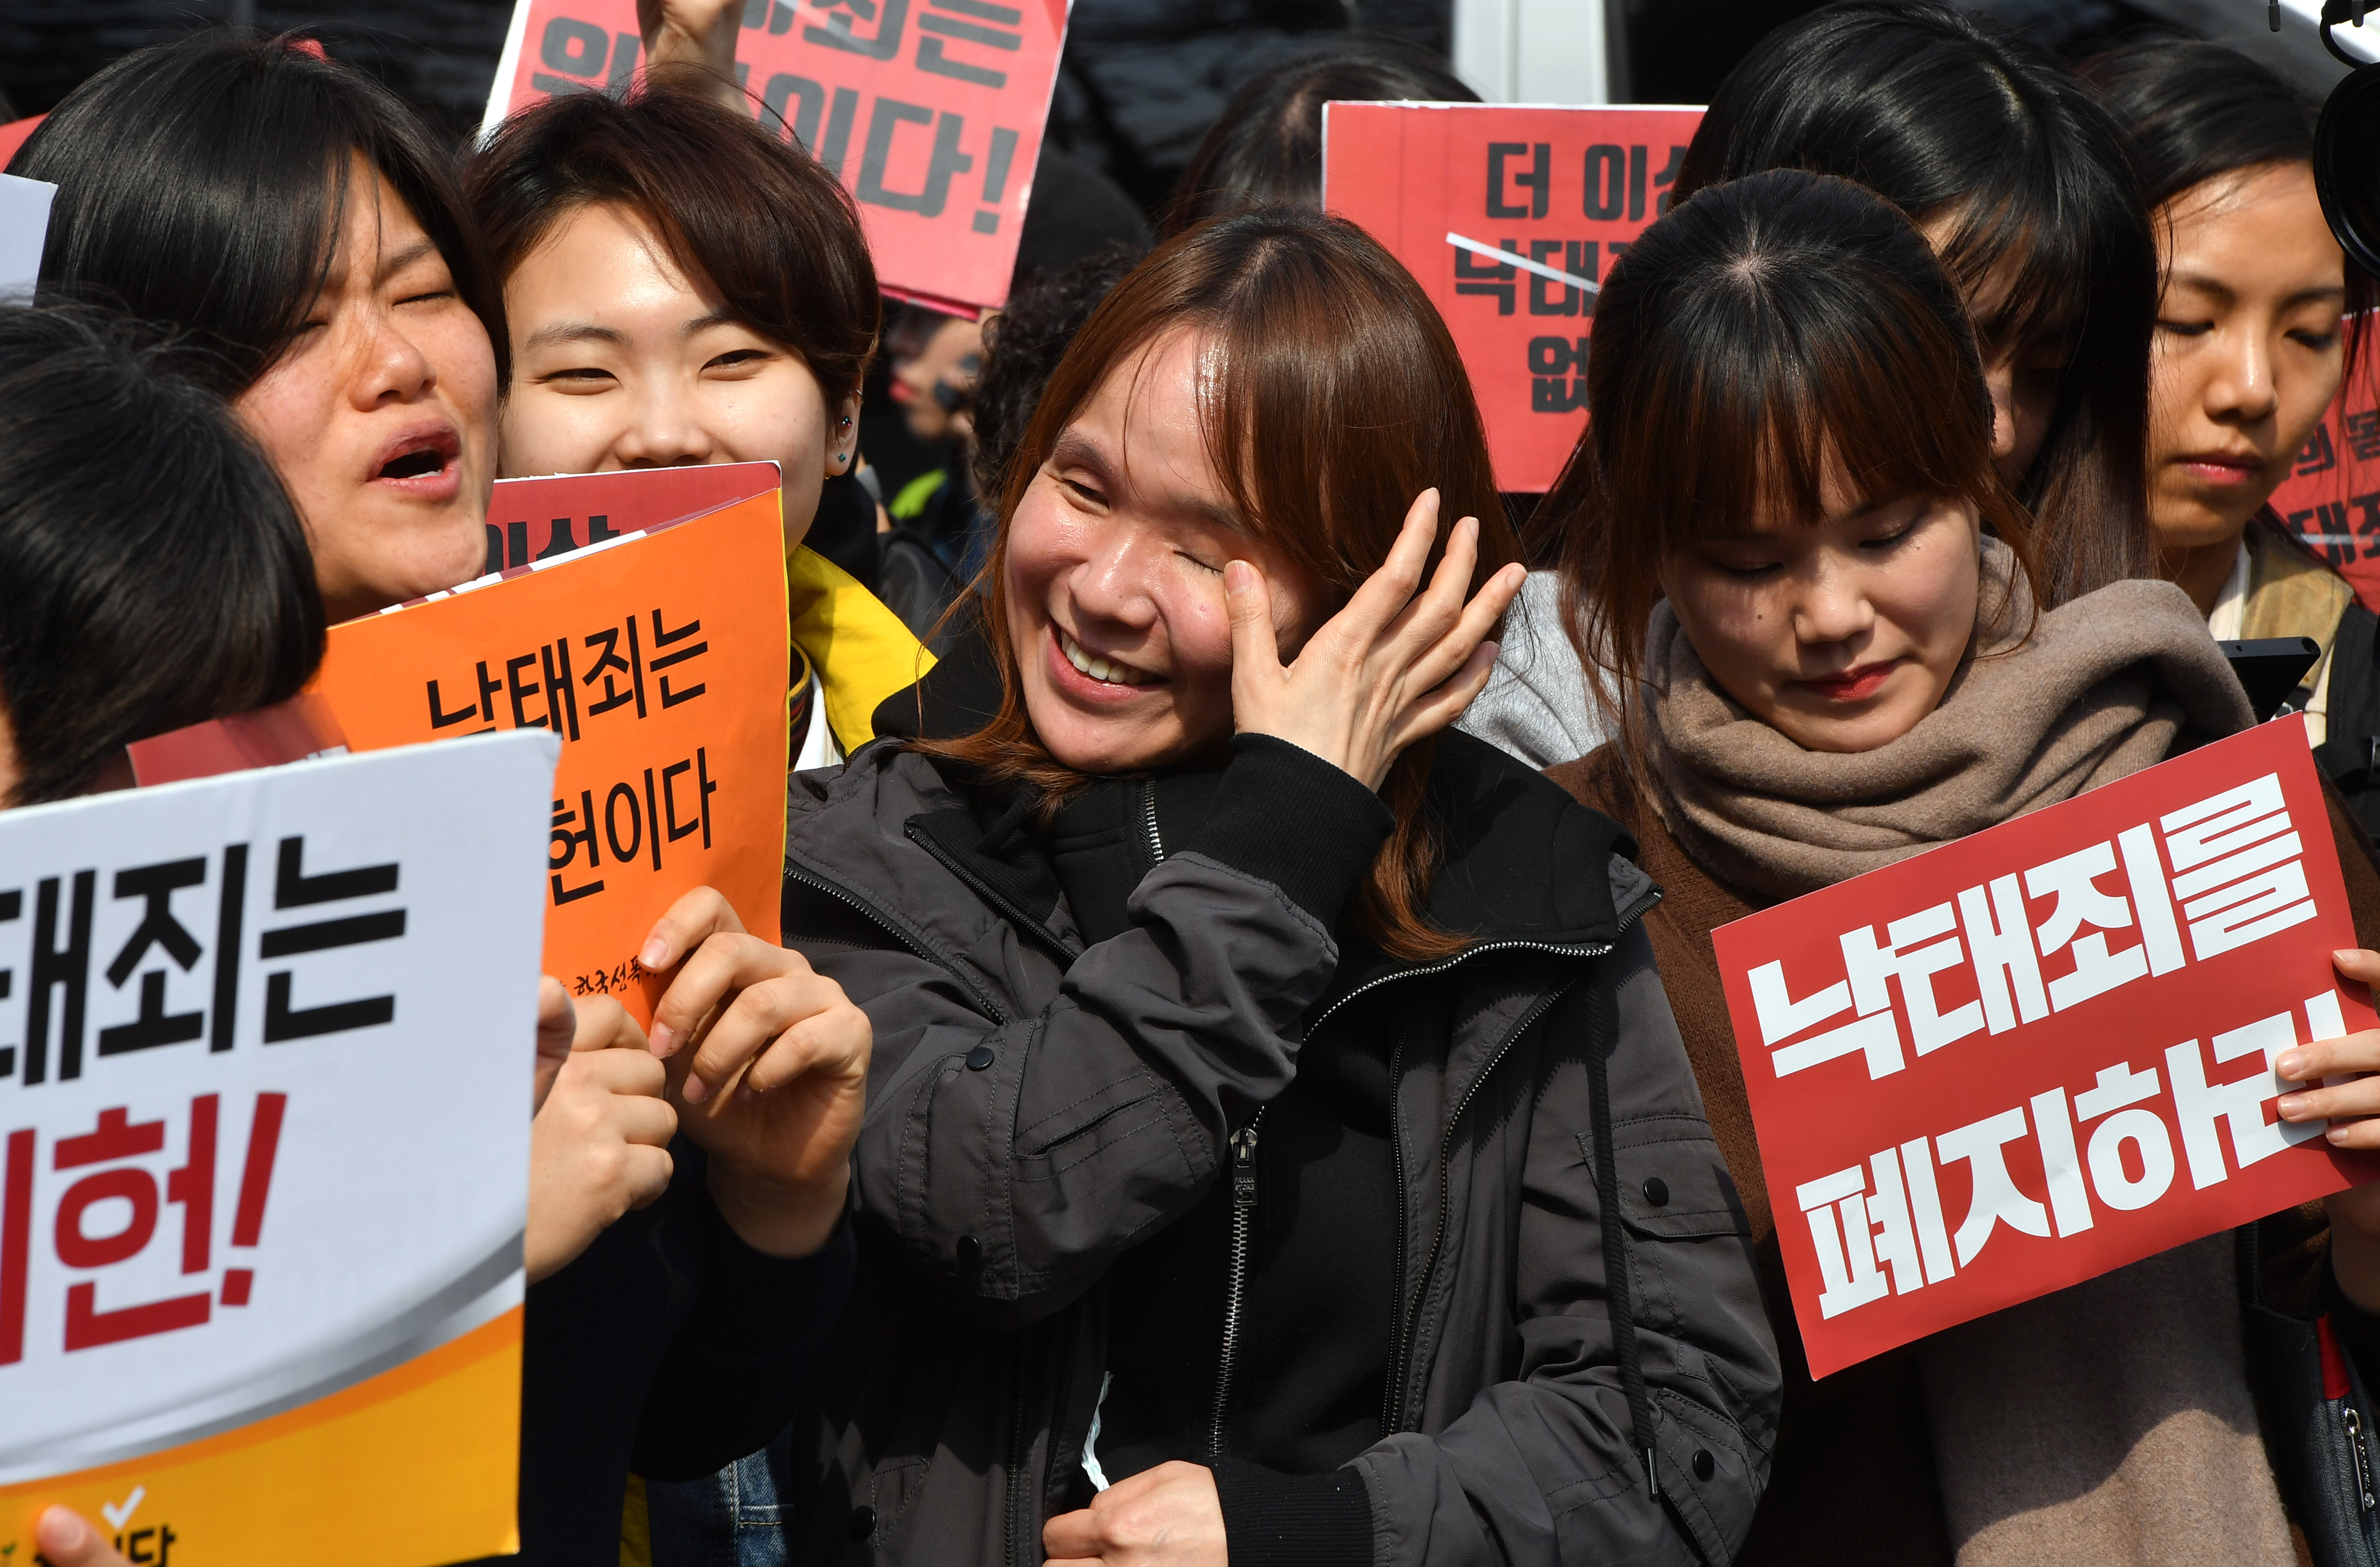 South Korean women's rights activists react after the constitutional court's ruling on decriminalisation of abortion during a rally against the abortion ban outside the court in Seoul on April 11, 2019. (JUNG YEON-JE/AFP/Getty Images)